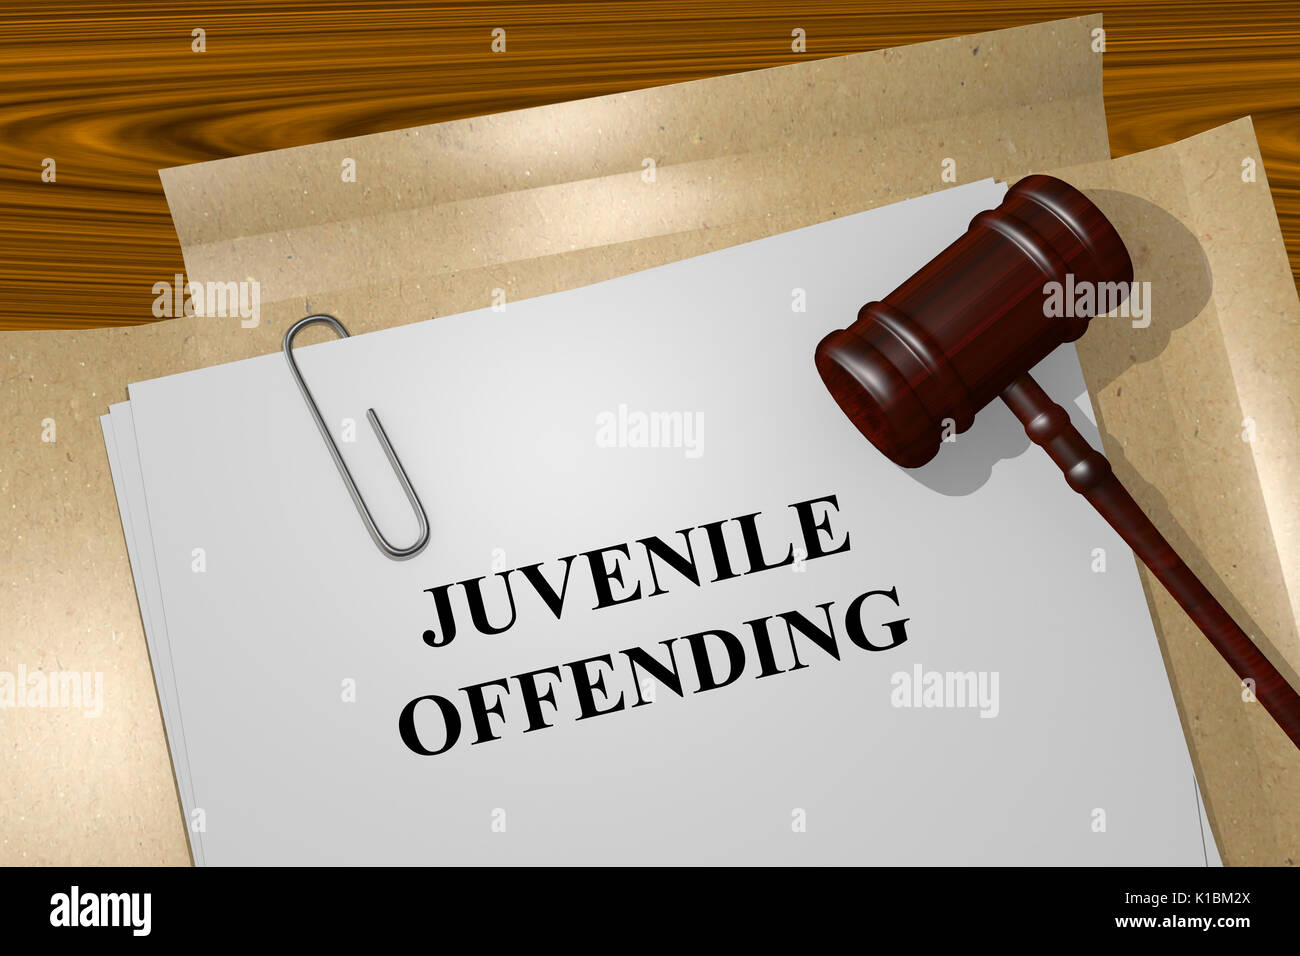 Render illustration of Juvenile Offending title on Legal Documents Stock Photo